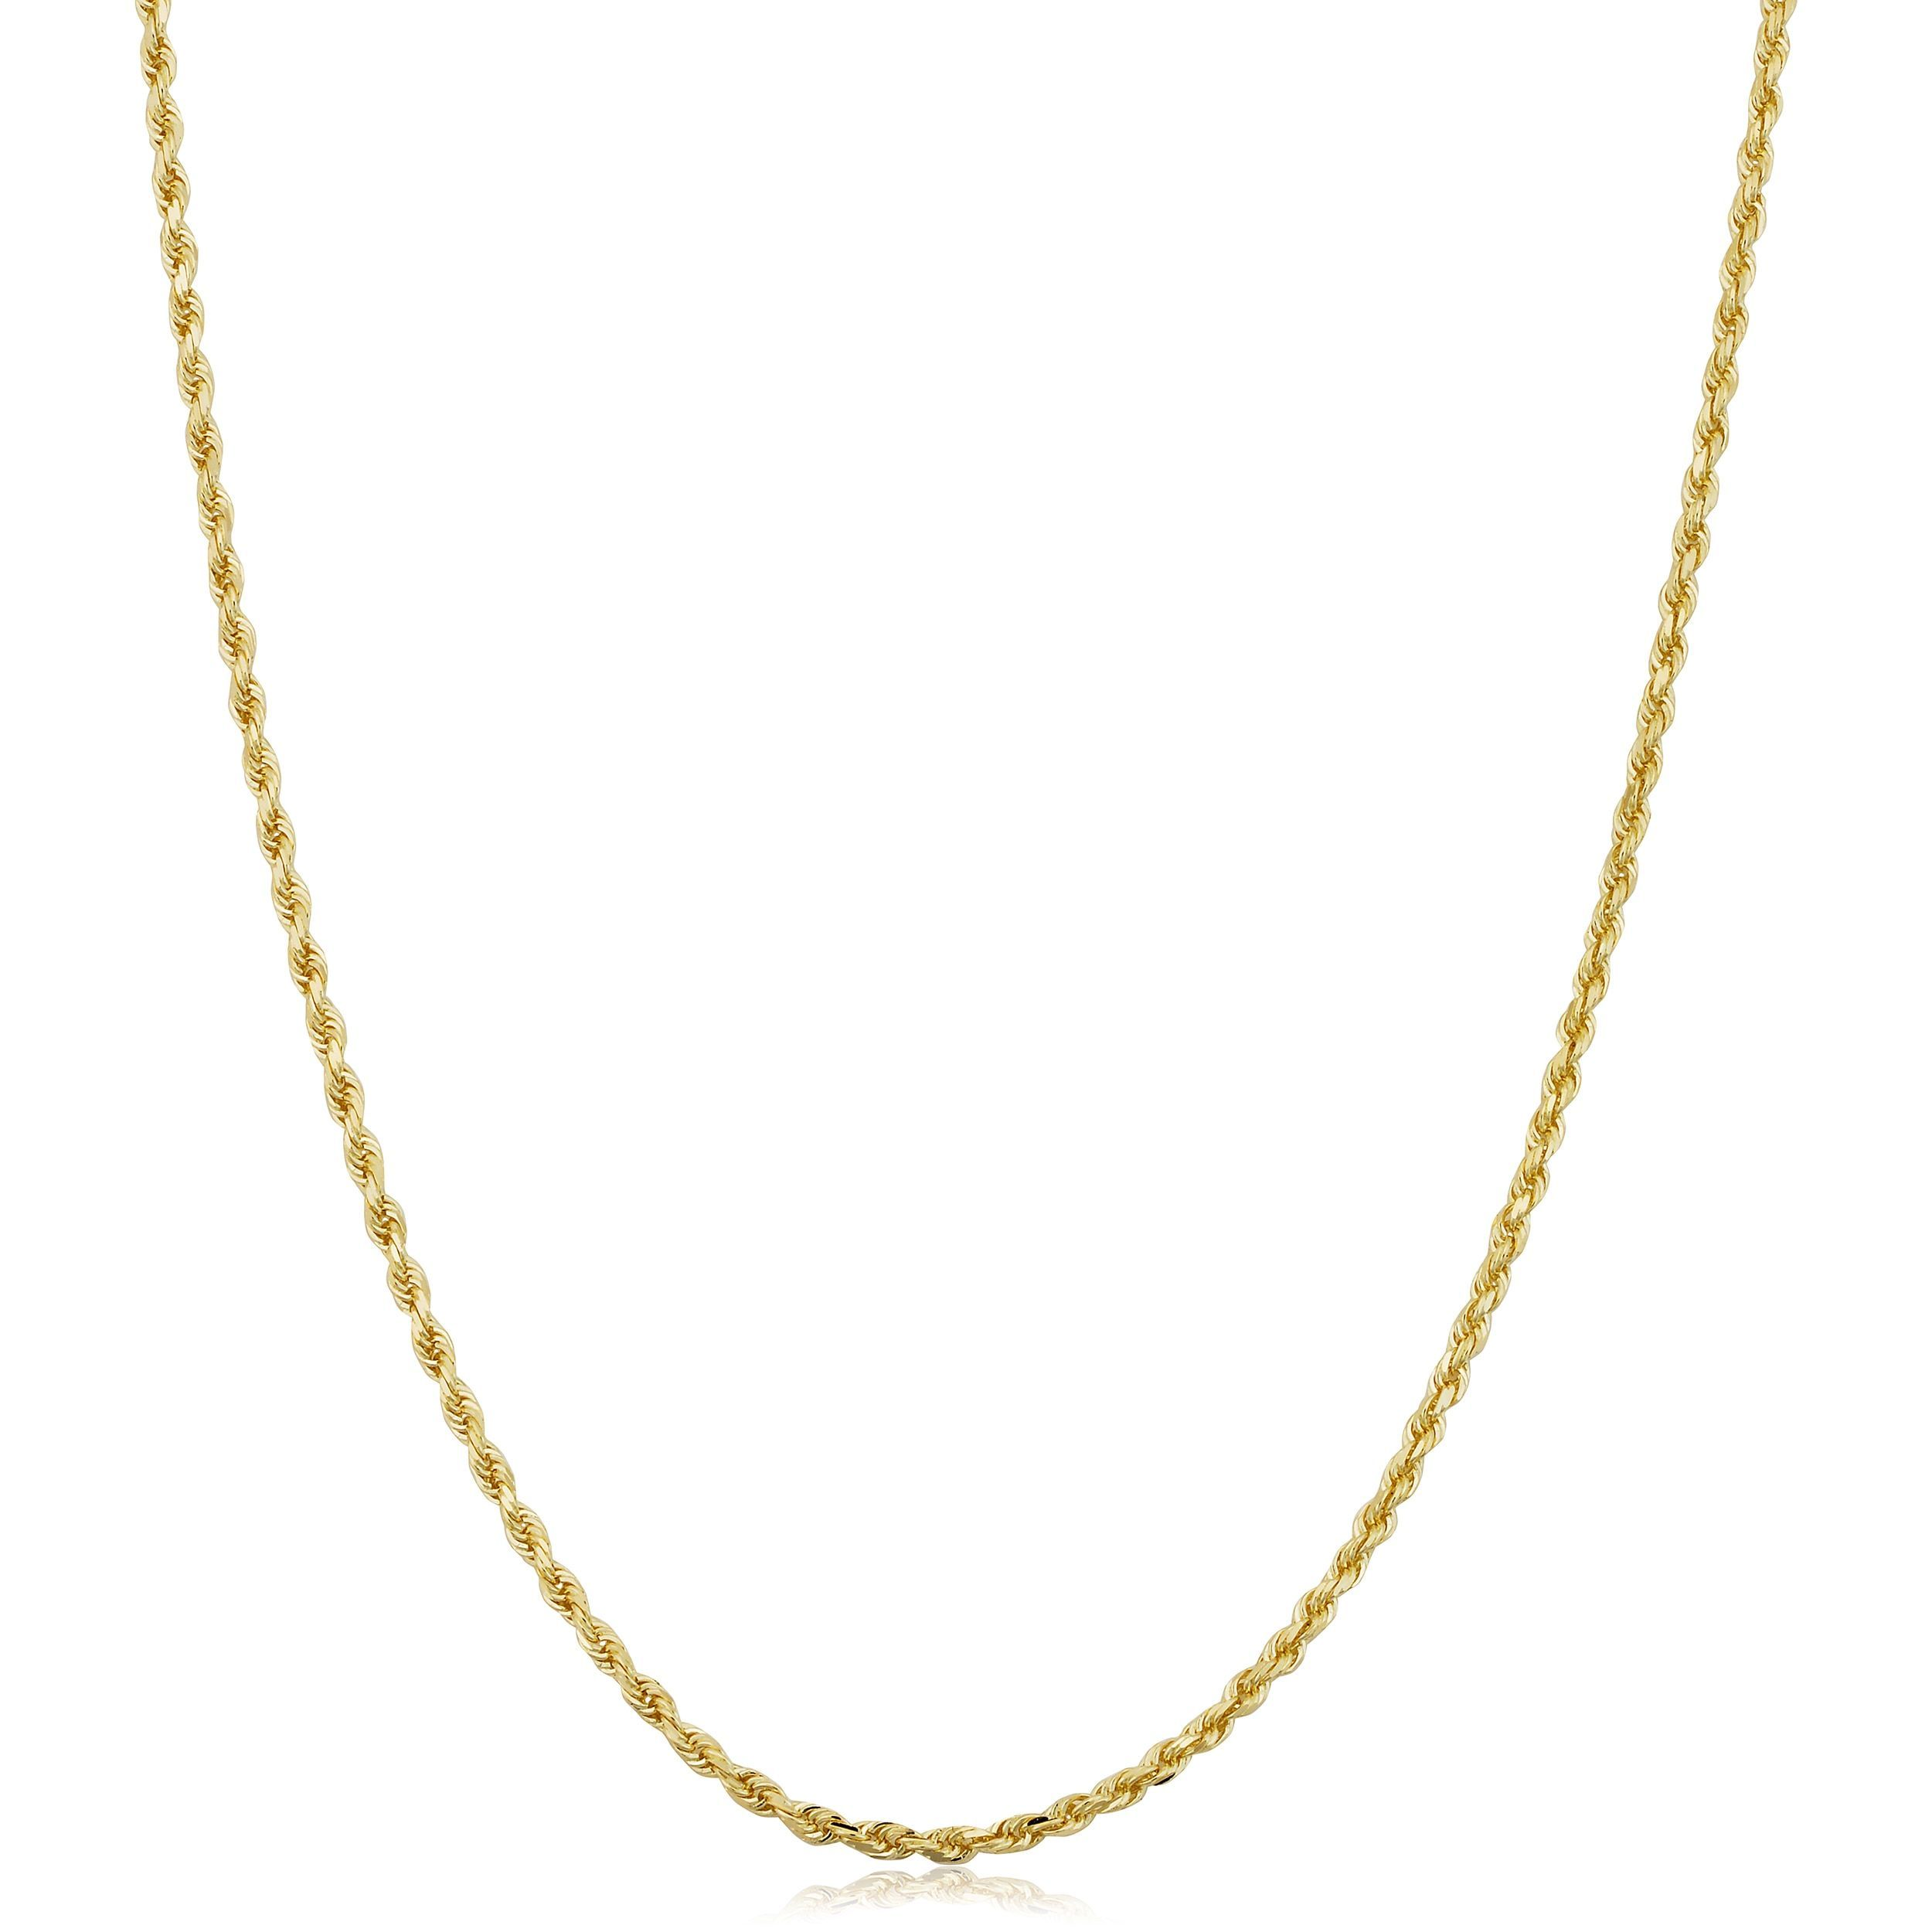 10k Yellow Gold 1 5 Mm Semi Solid Rope Chain Necklace 14 30 Inch Silver Claddagh Ring Sterling Silver Necklaces Gold Rope Chains